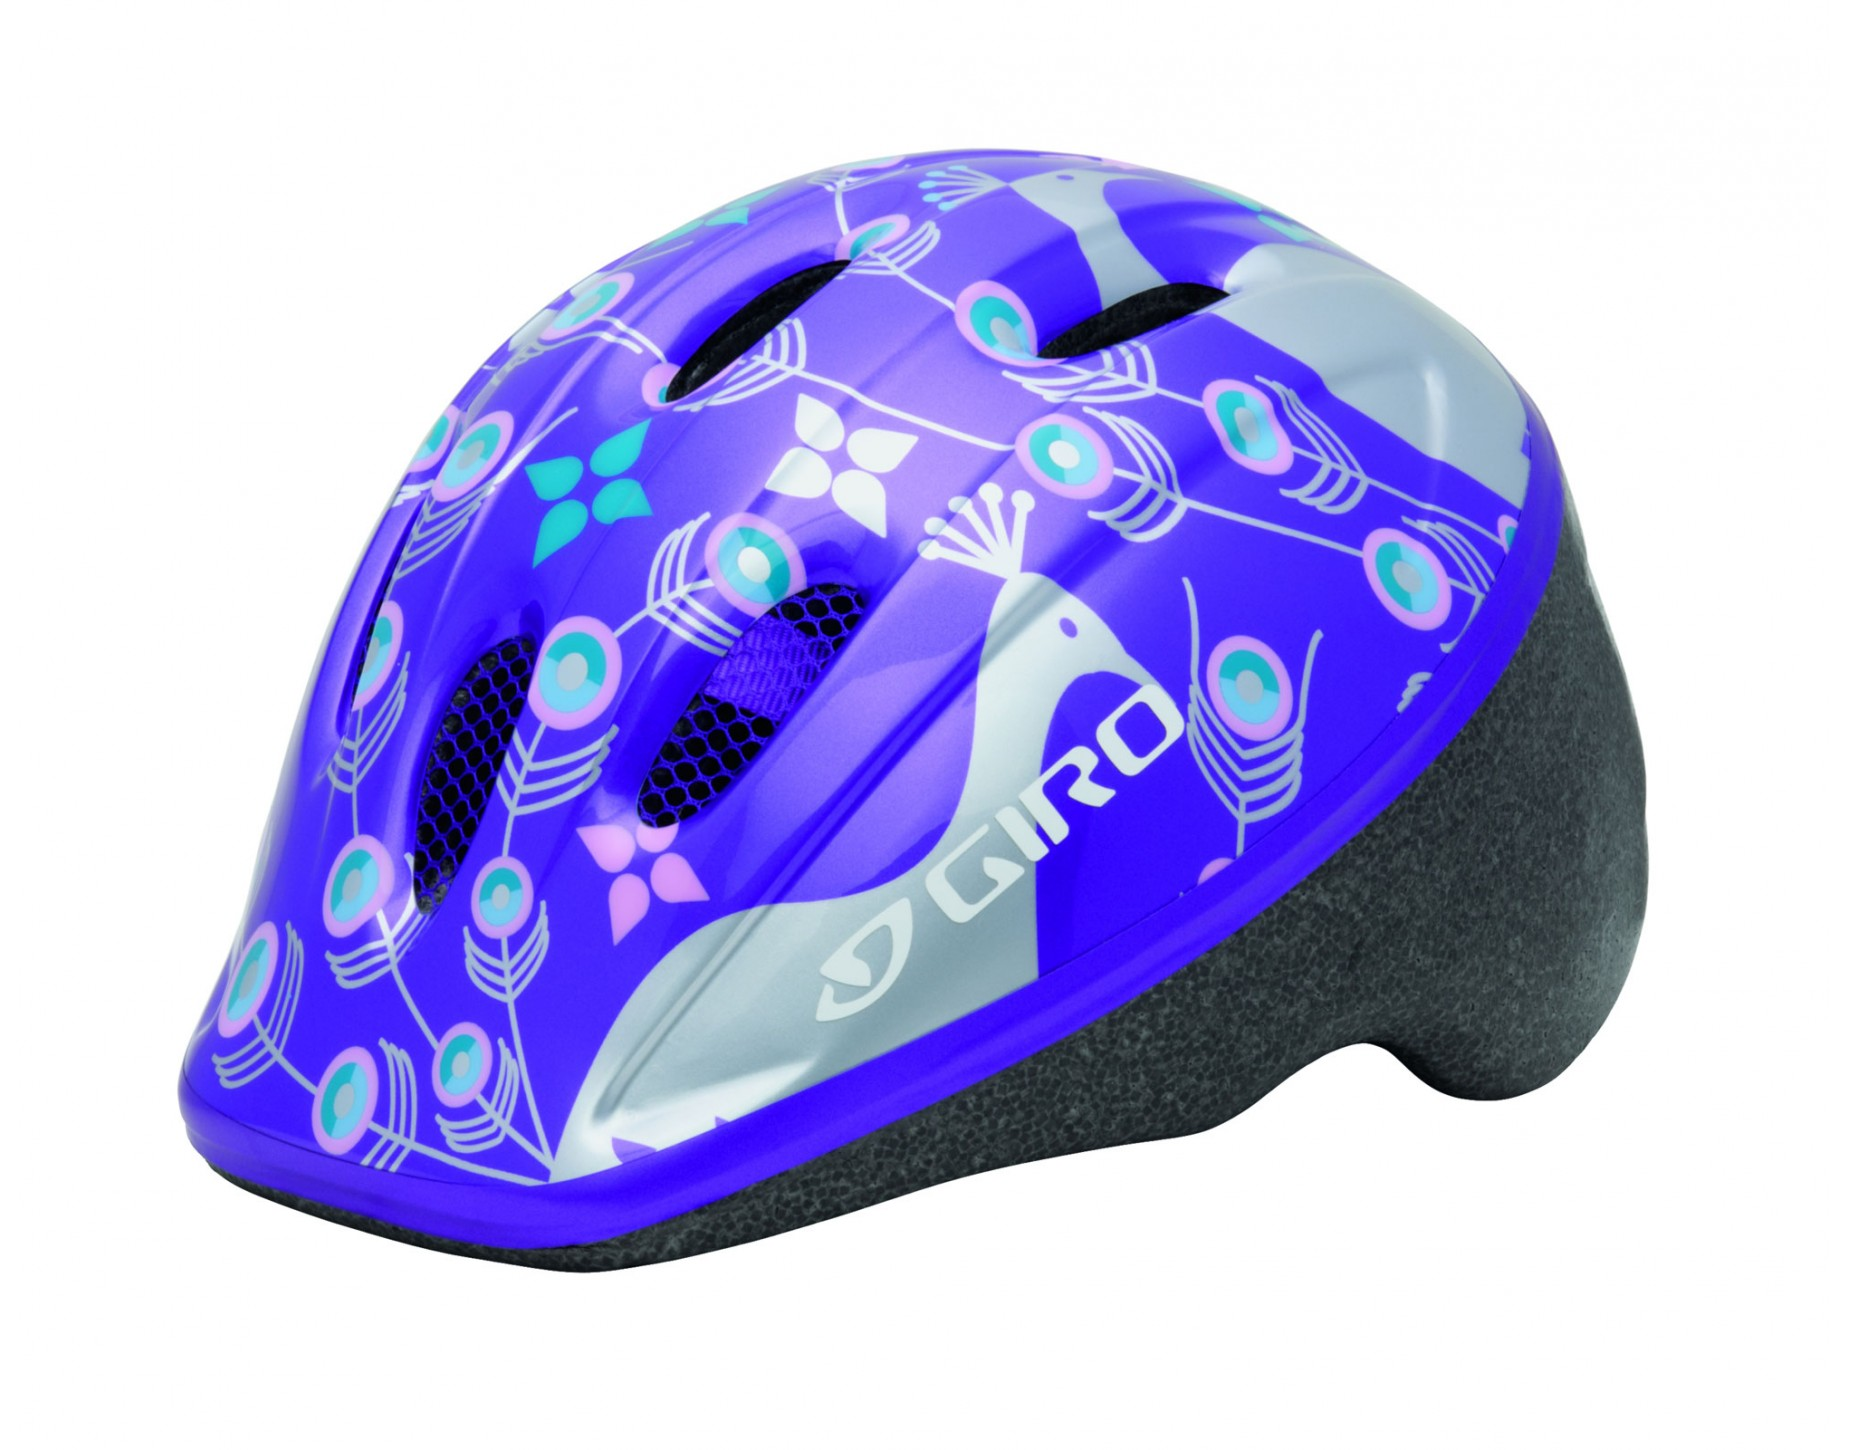 GIRO kinderhelm ME 2 purple silver eleanor peacocks